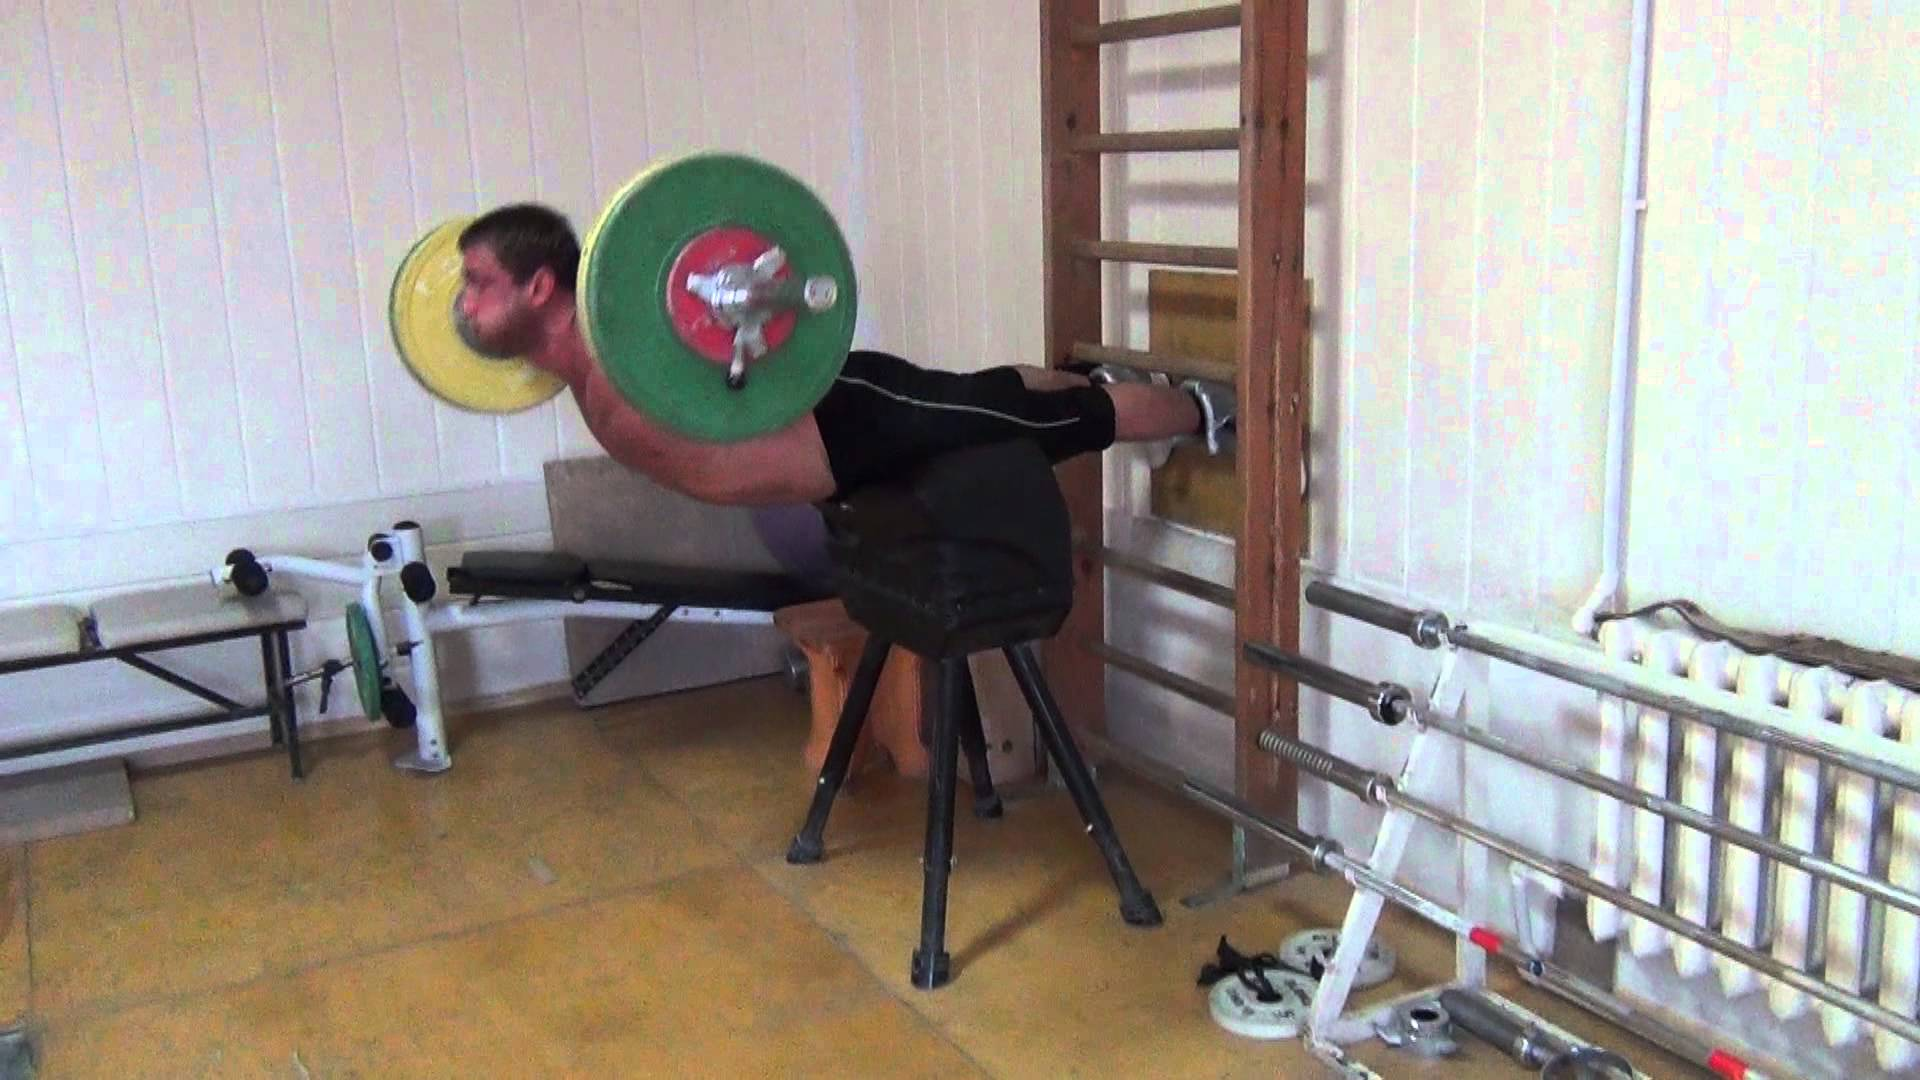 Dmitry Klokov Back Hyperextensions *Update* - All Things Gym